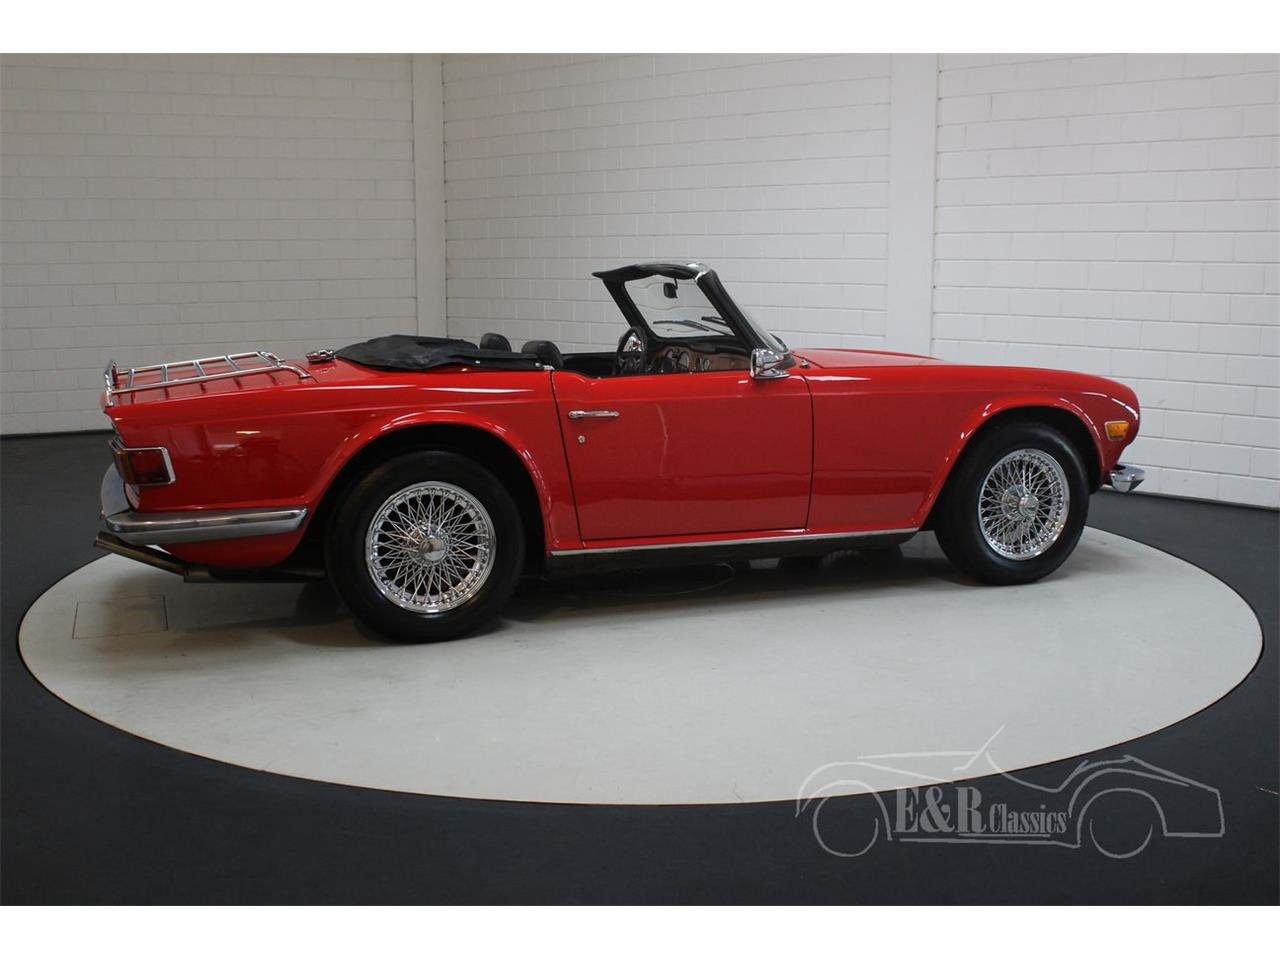 Large Picture of Classic '73 Triumph TR6 located in Waalwijk Noord Brabant - $25,800.00 Offered by E & R Classics - PWMQ